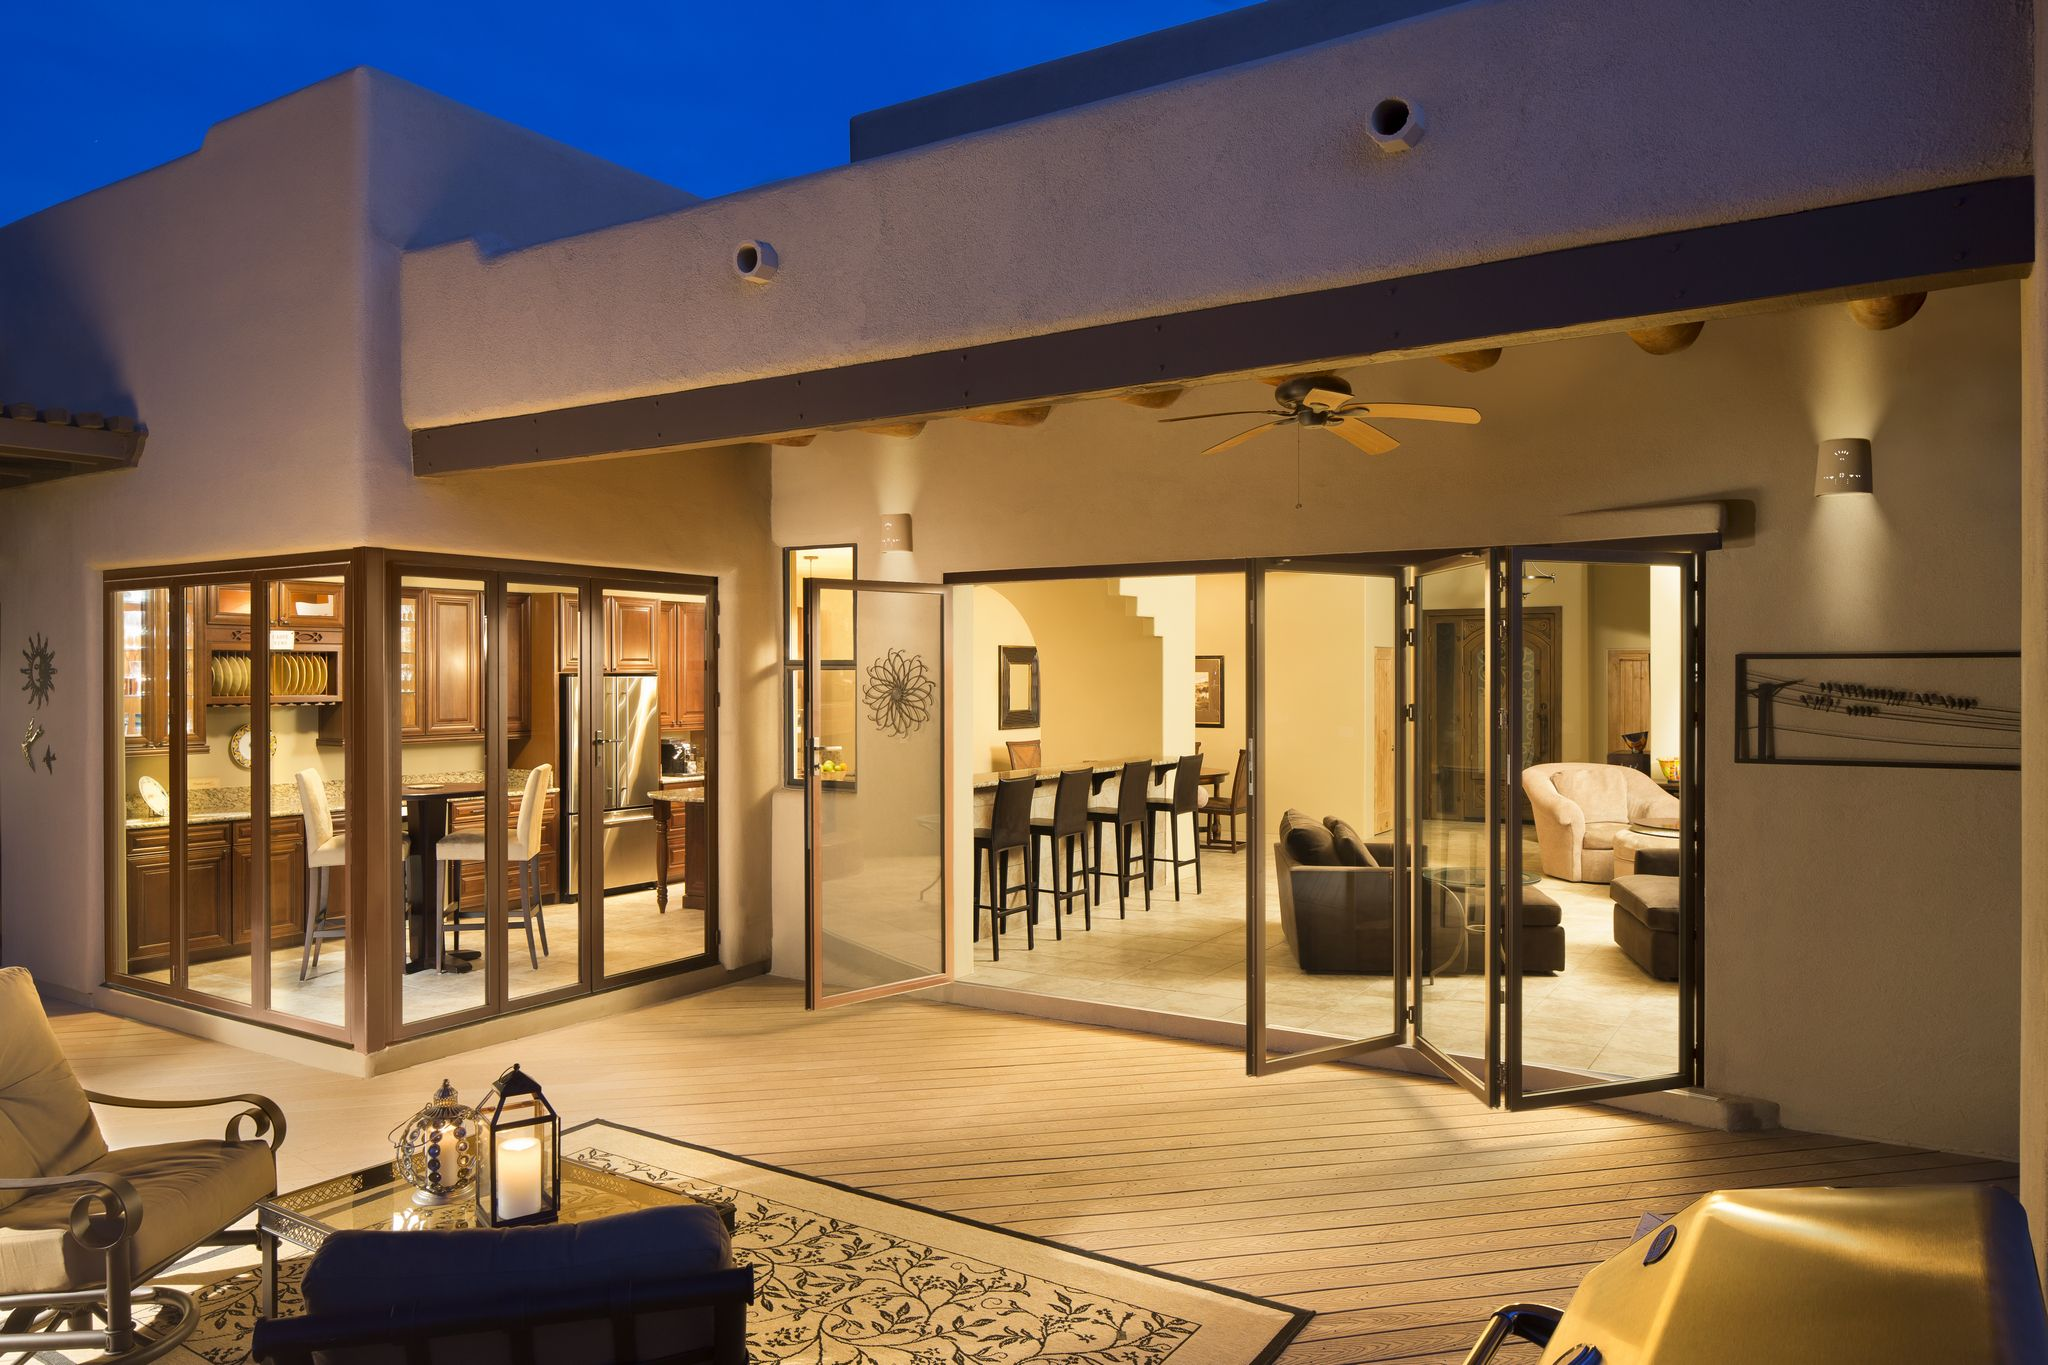 Folding doors rotate an entire 180 degrees to pletely fold